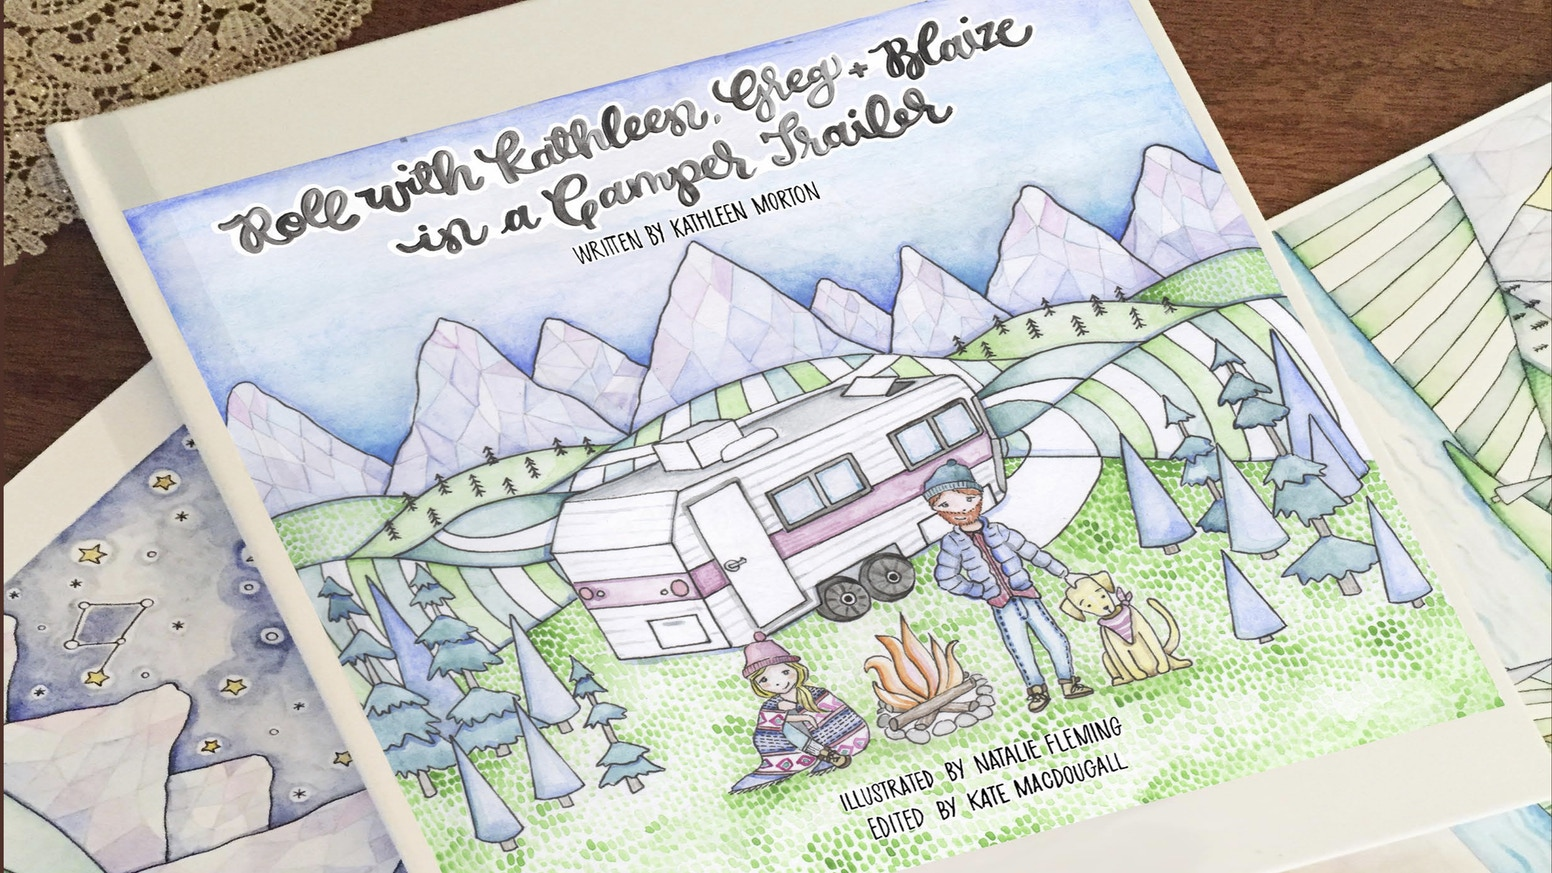 Roll with Kathleen, Greg + Blaize in a Camper Trailer, a book filled with stories and illustrations from our experiences living tiny.